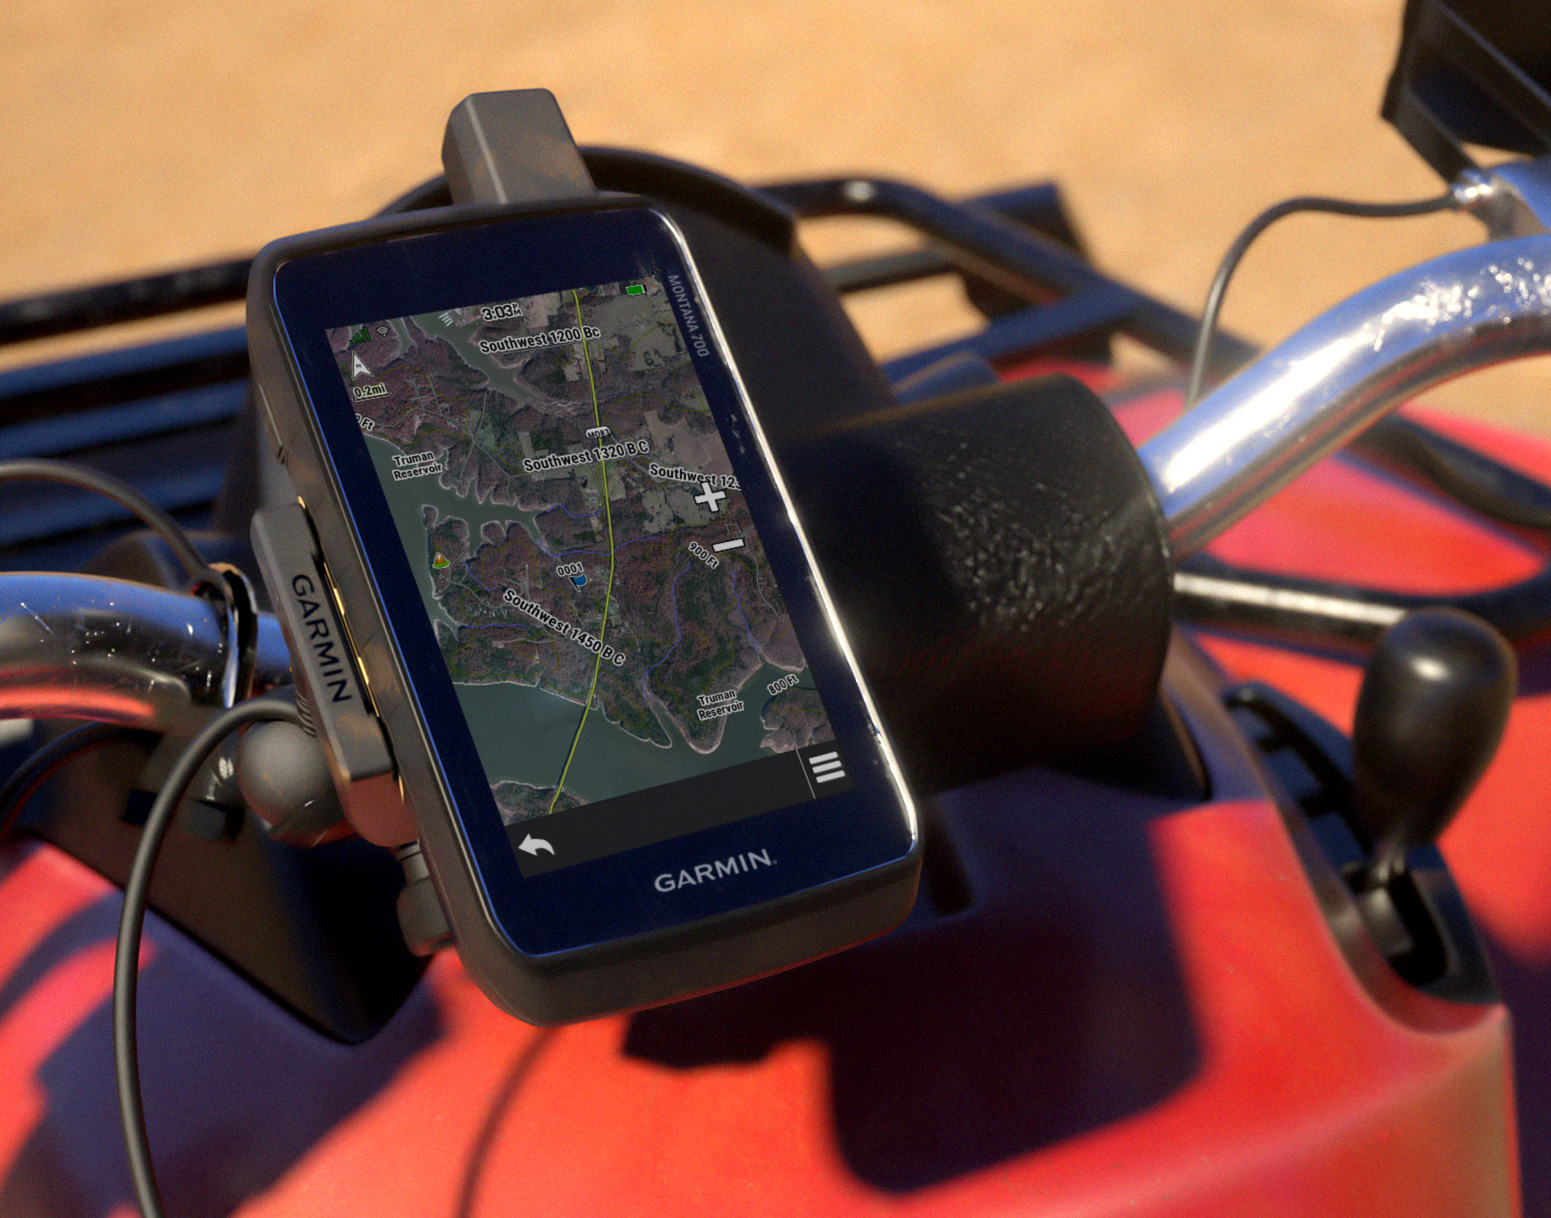 Garmin Powers Up 700-Series Handheld Nav Units at werd.com